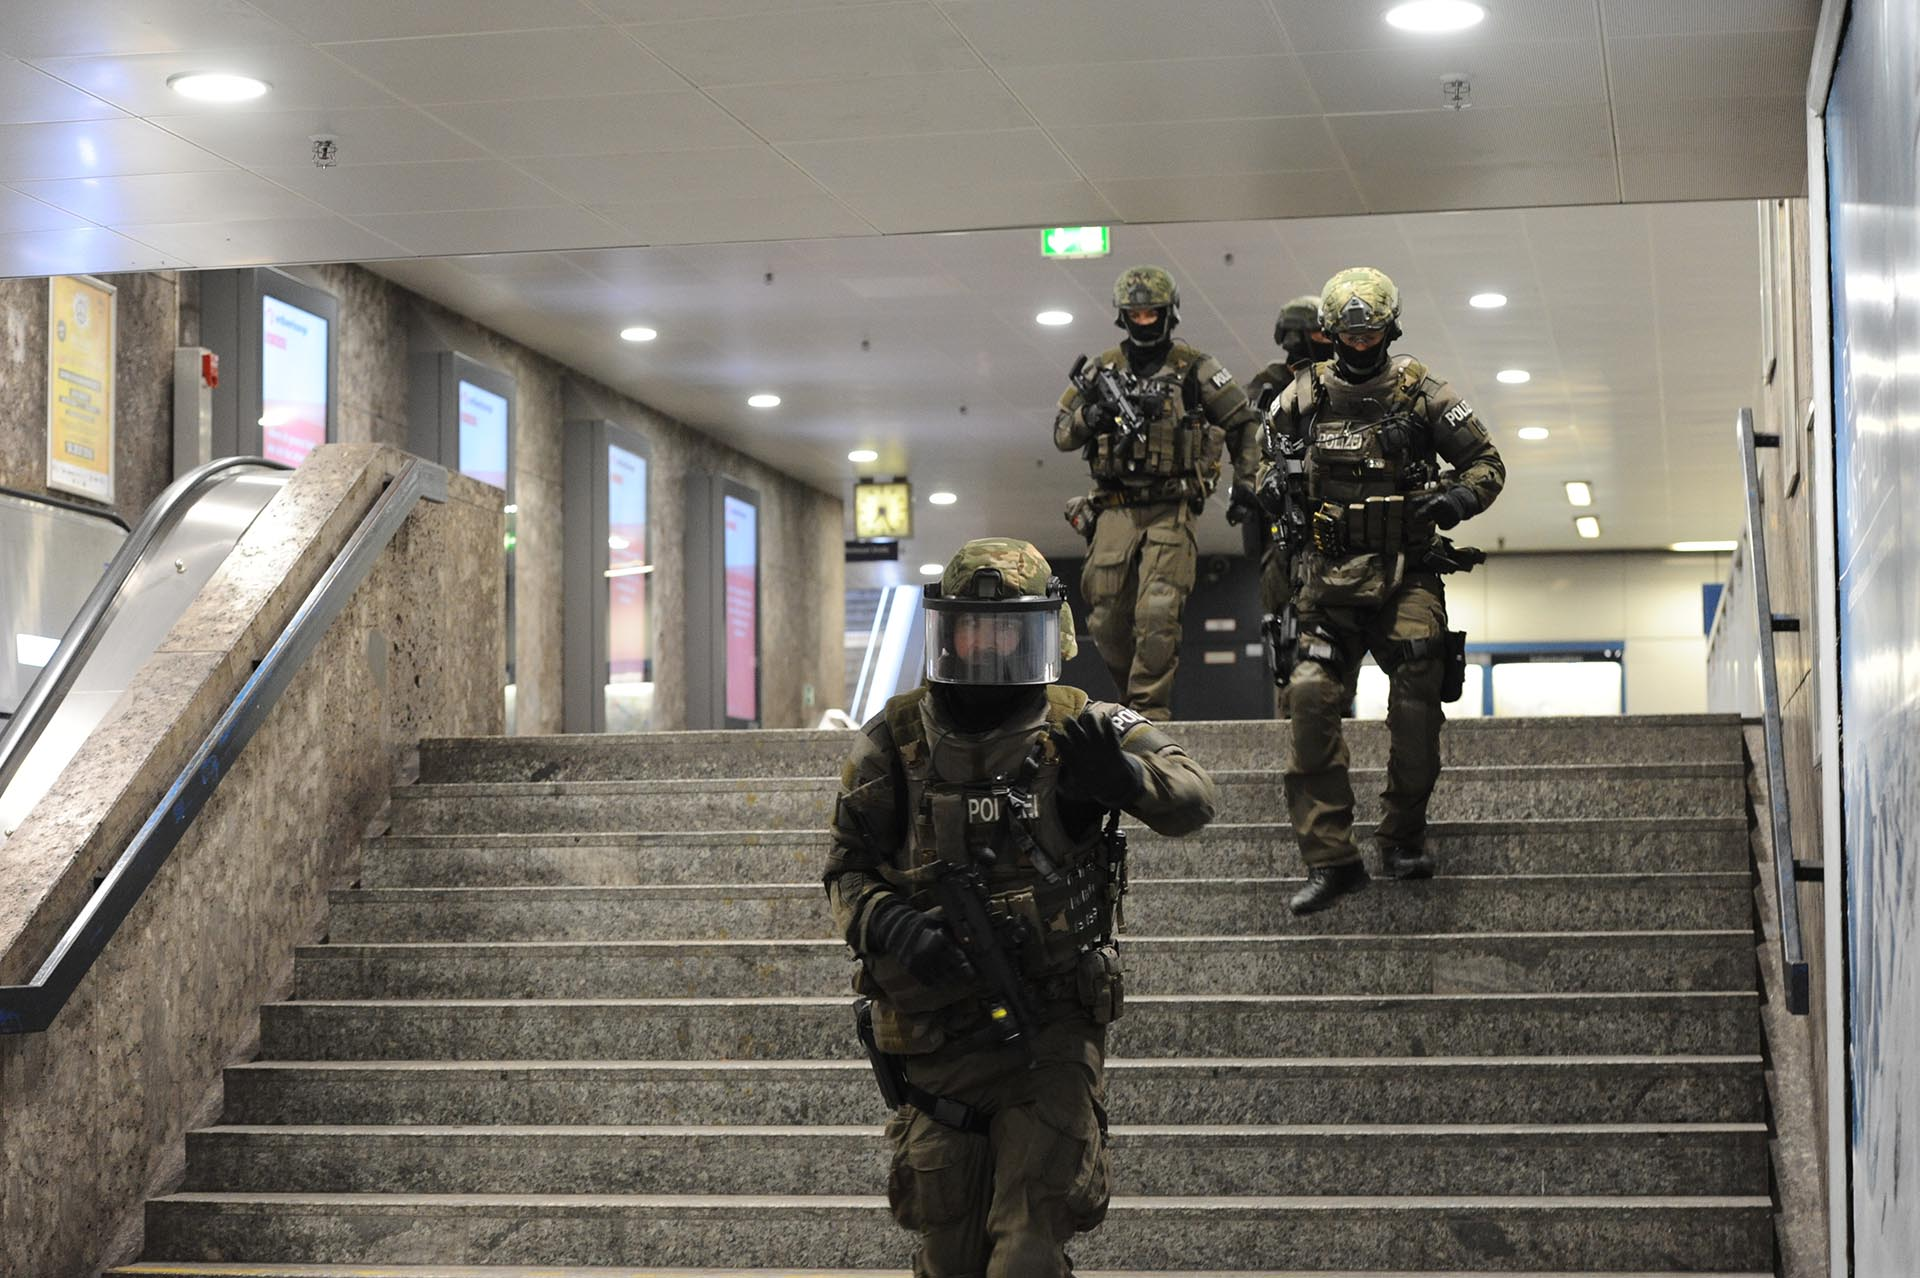 Heavily armed police forces walk through the underground station Karlsplatz (Stachus) after a shooting in the Olympia shopping centre was reported in Munich, southern Germany, Friday, July 22, 2016. (Andreas Gebert/dpa via AP)